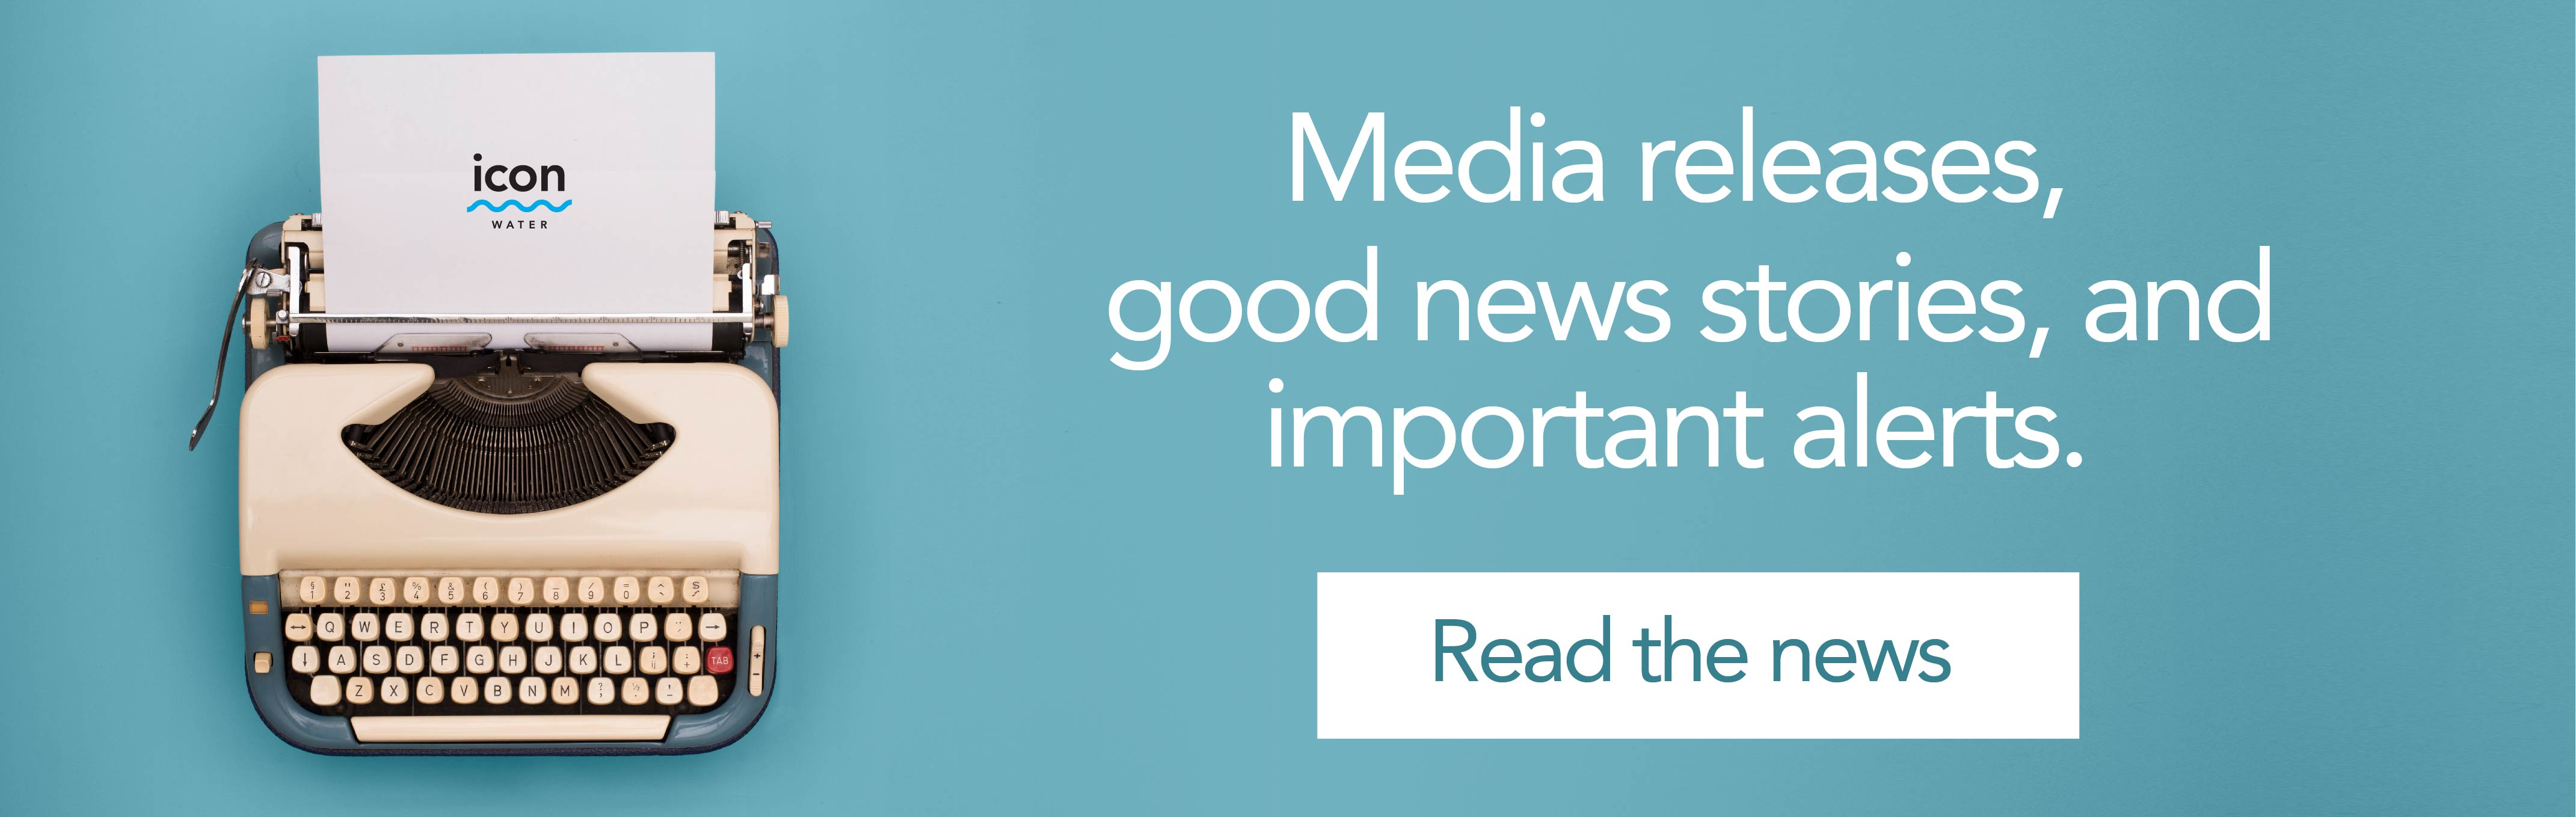 Media releases, good news stories, and important alerts. Read the news?